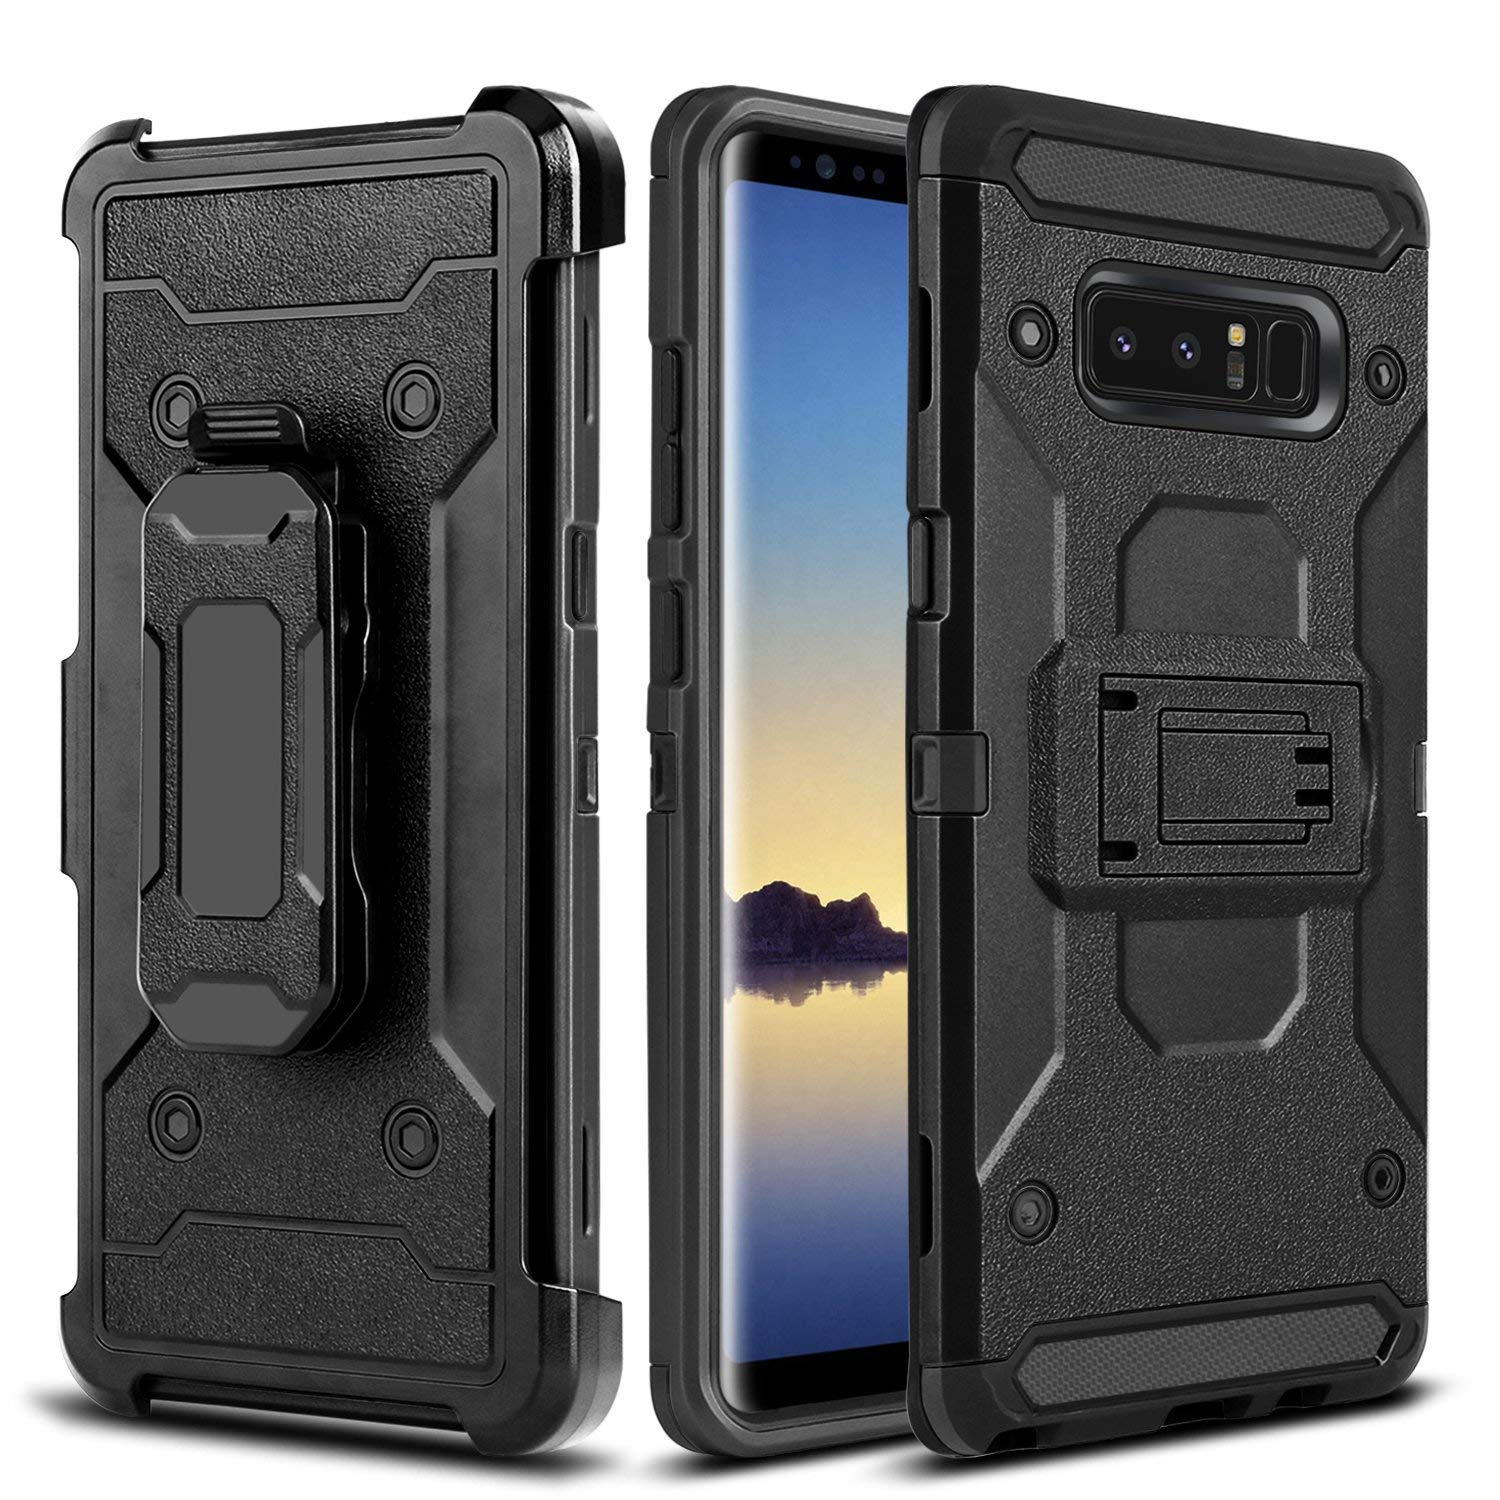 Note 8 Case, Galaxy Note 8 Case,Heavy Duty Drop Protection Shockproof Swivel Belt Clip Kickstand Durable Rugged Soft Silicone Hard PC Armor Protective Cover for Samsung Galaxy Note 8 - Black